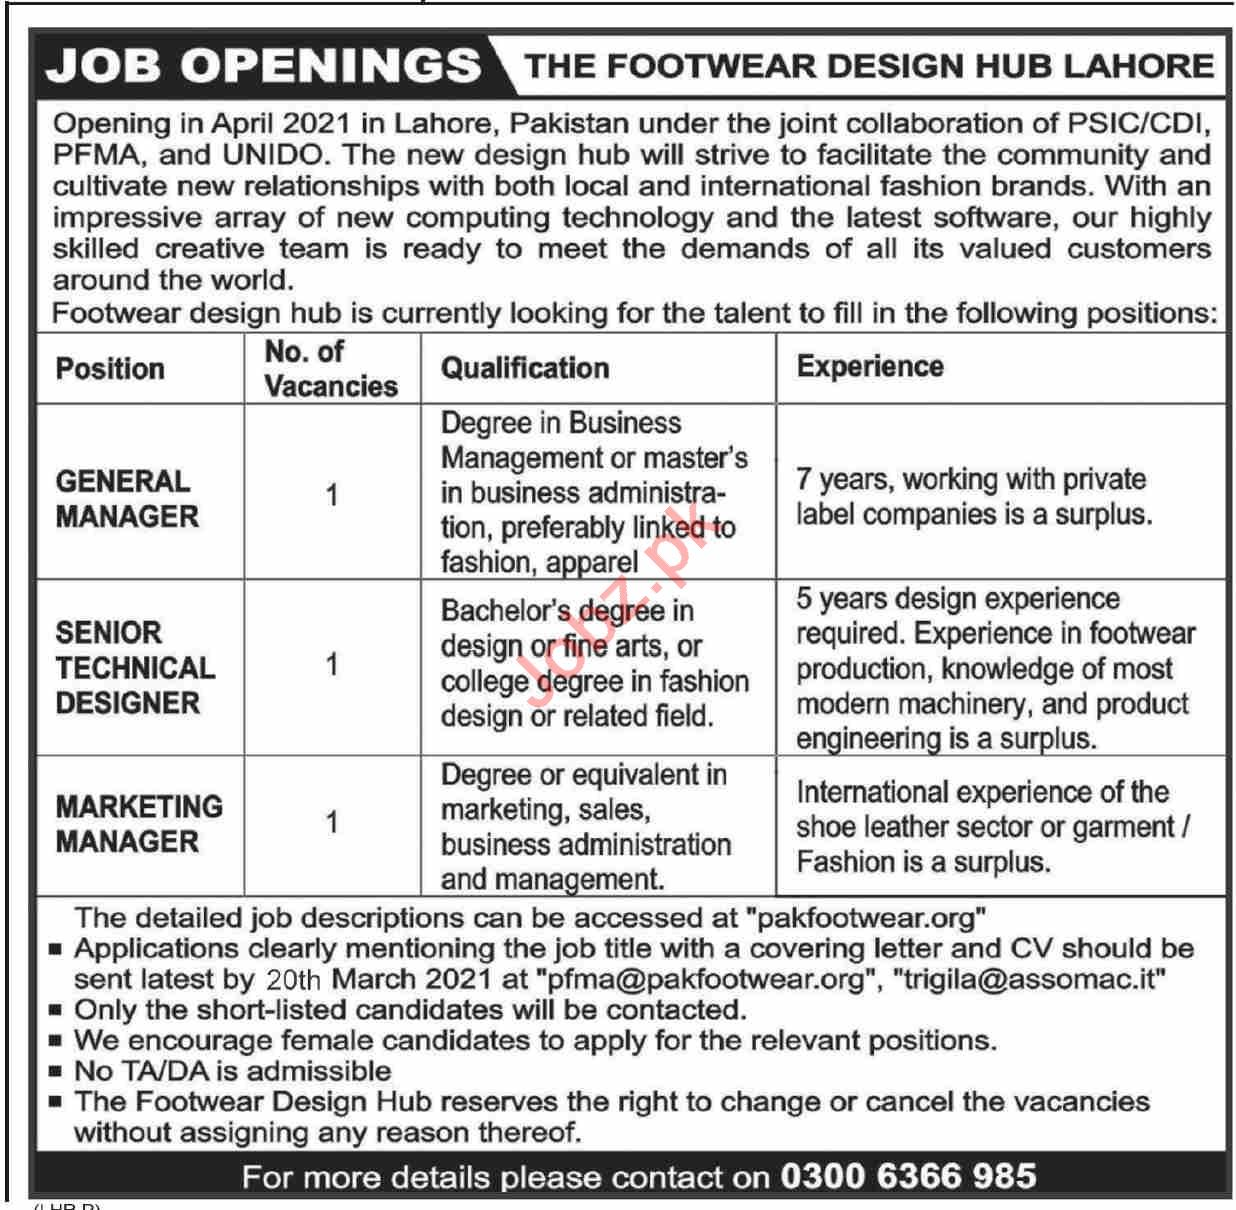 The Footwear Design Hub Lahore Jobs 2021 for General Manager